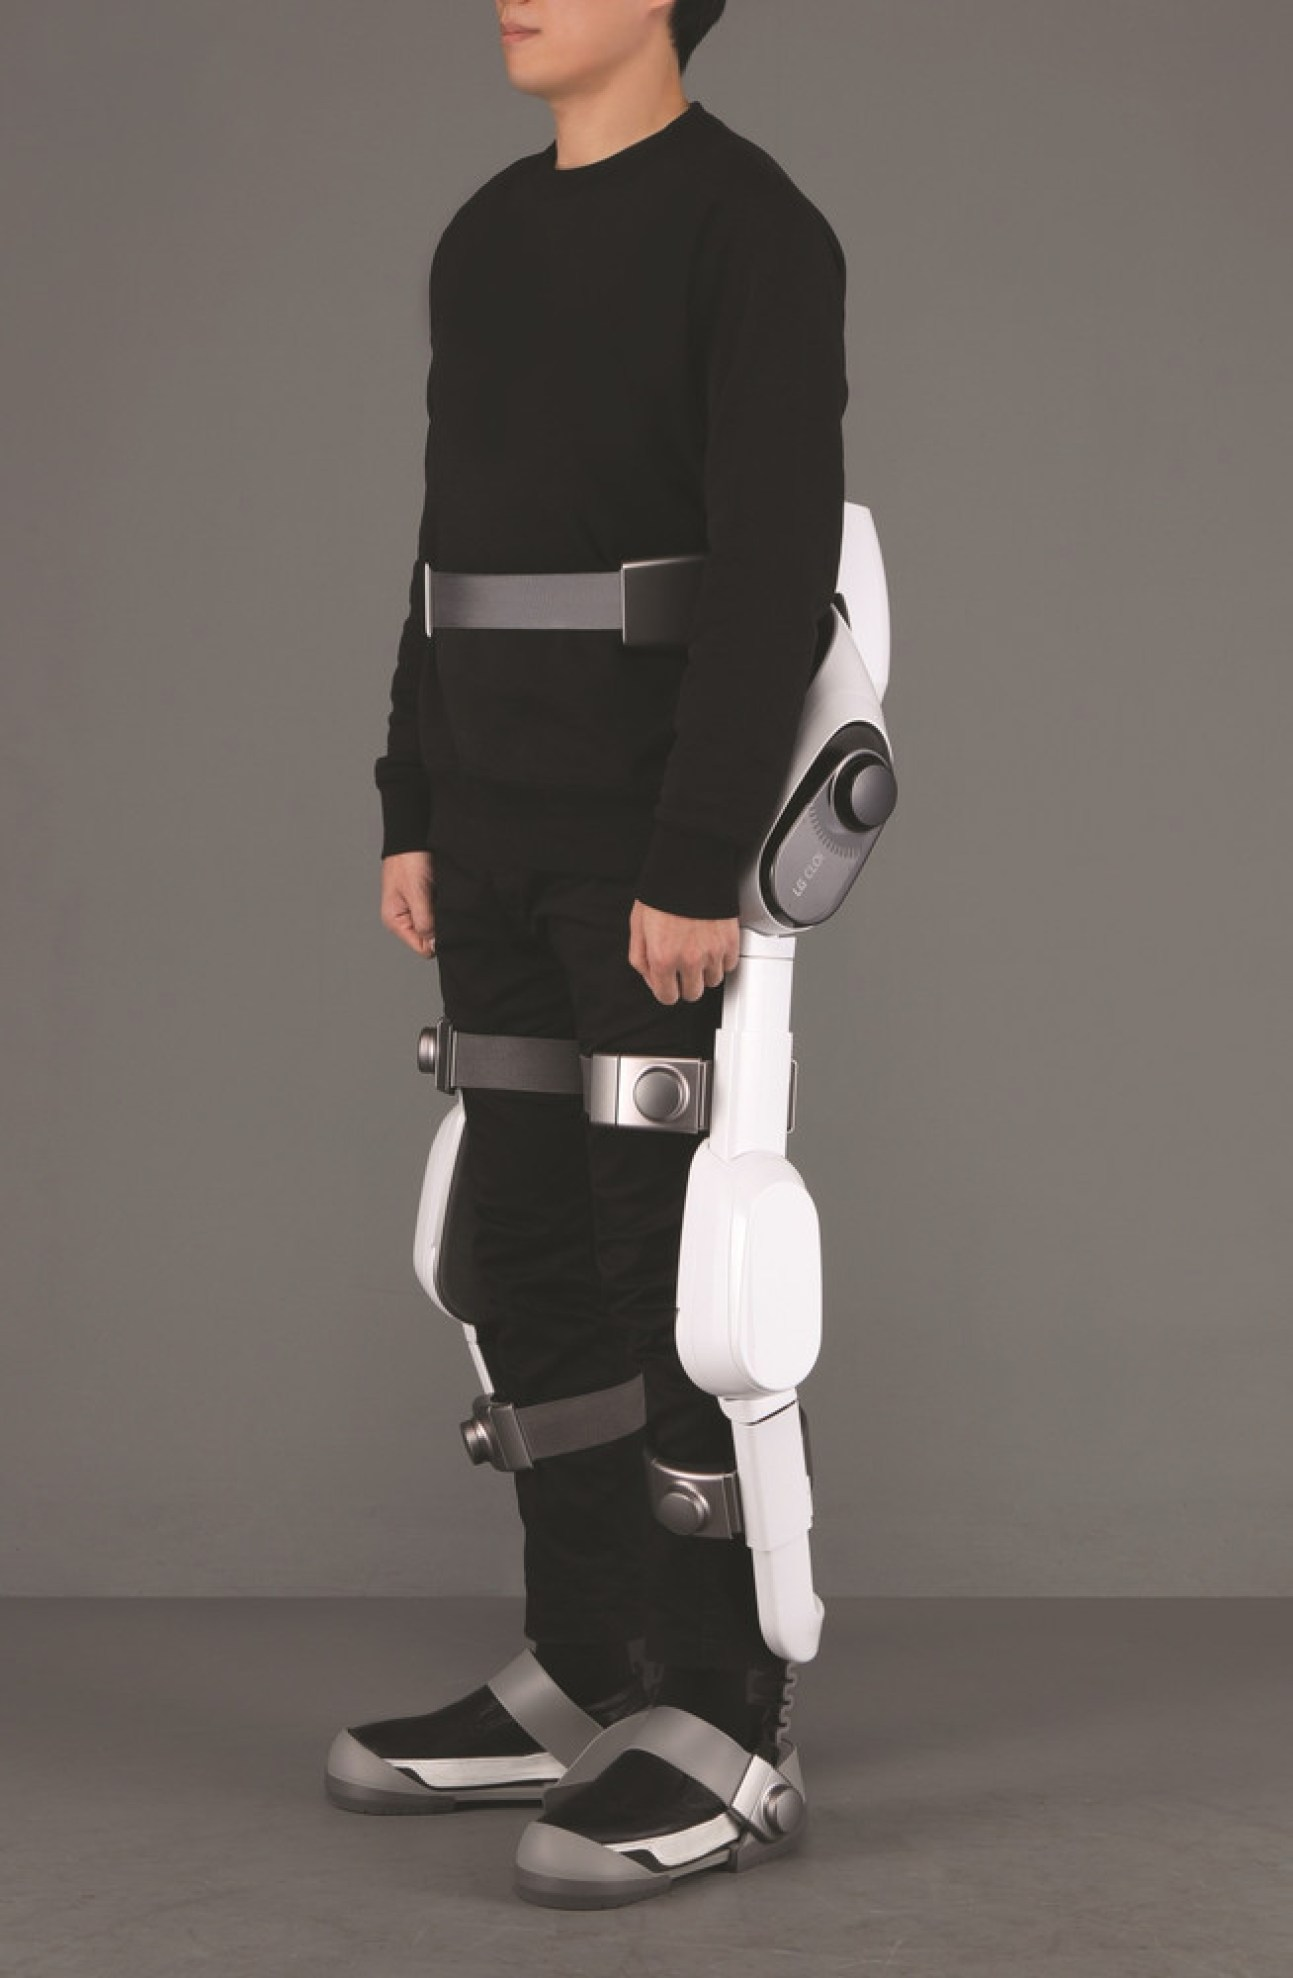 LG CLOi SuitBot Standing Front